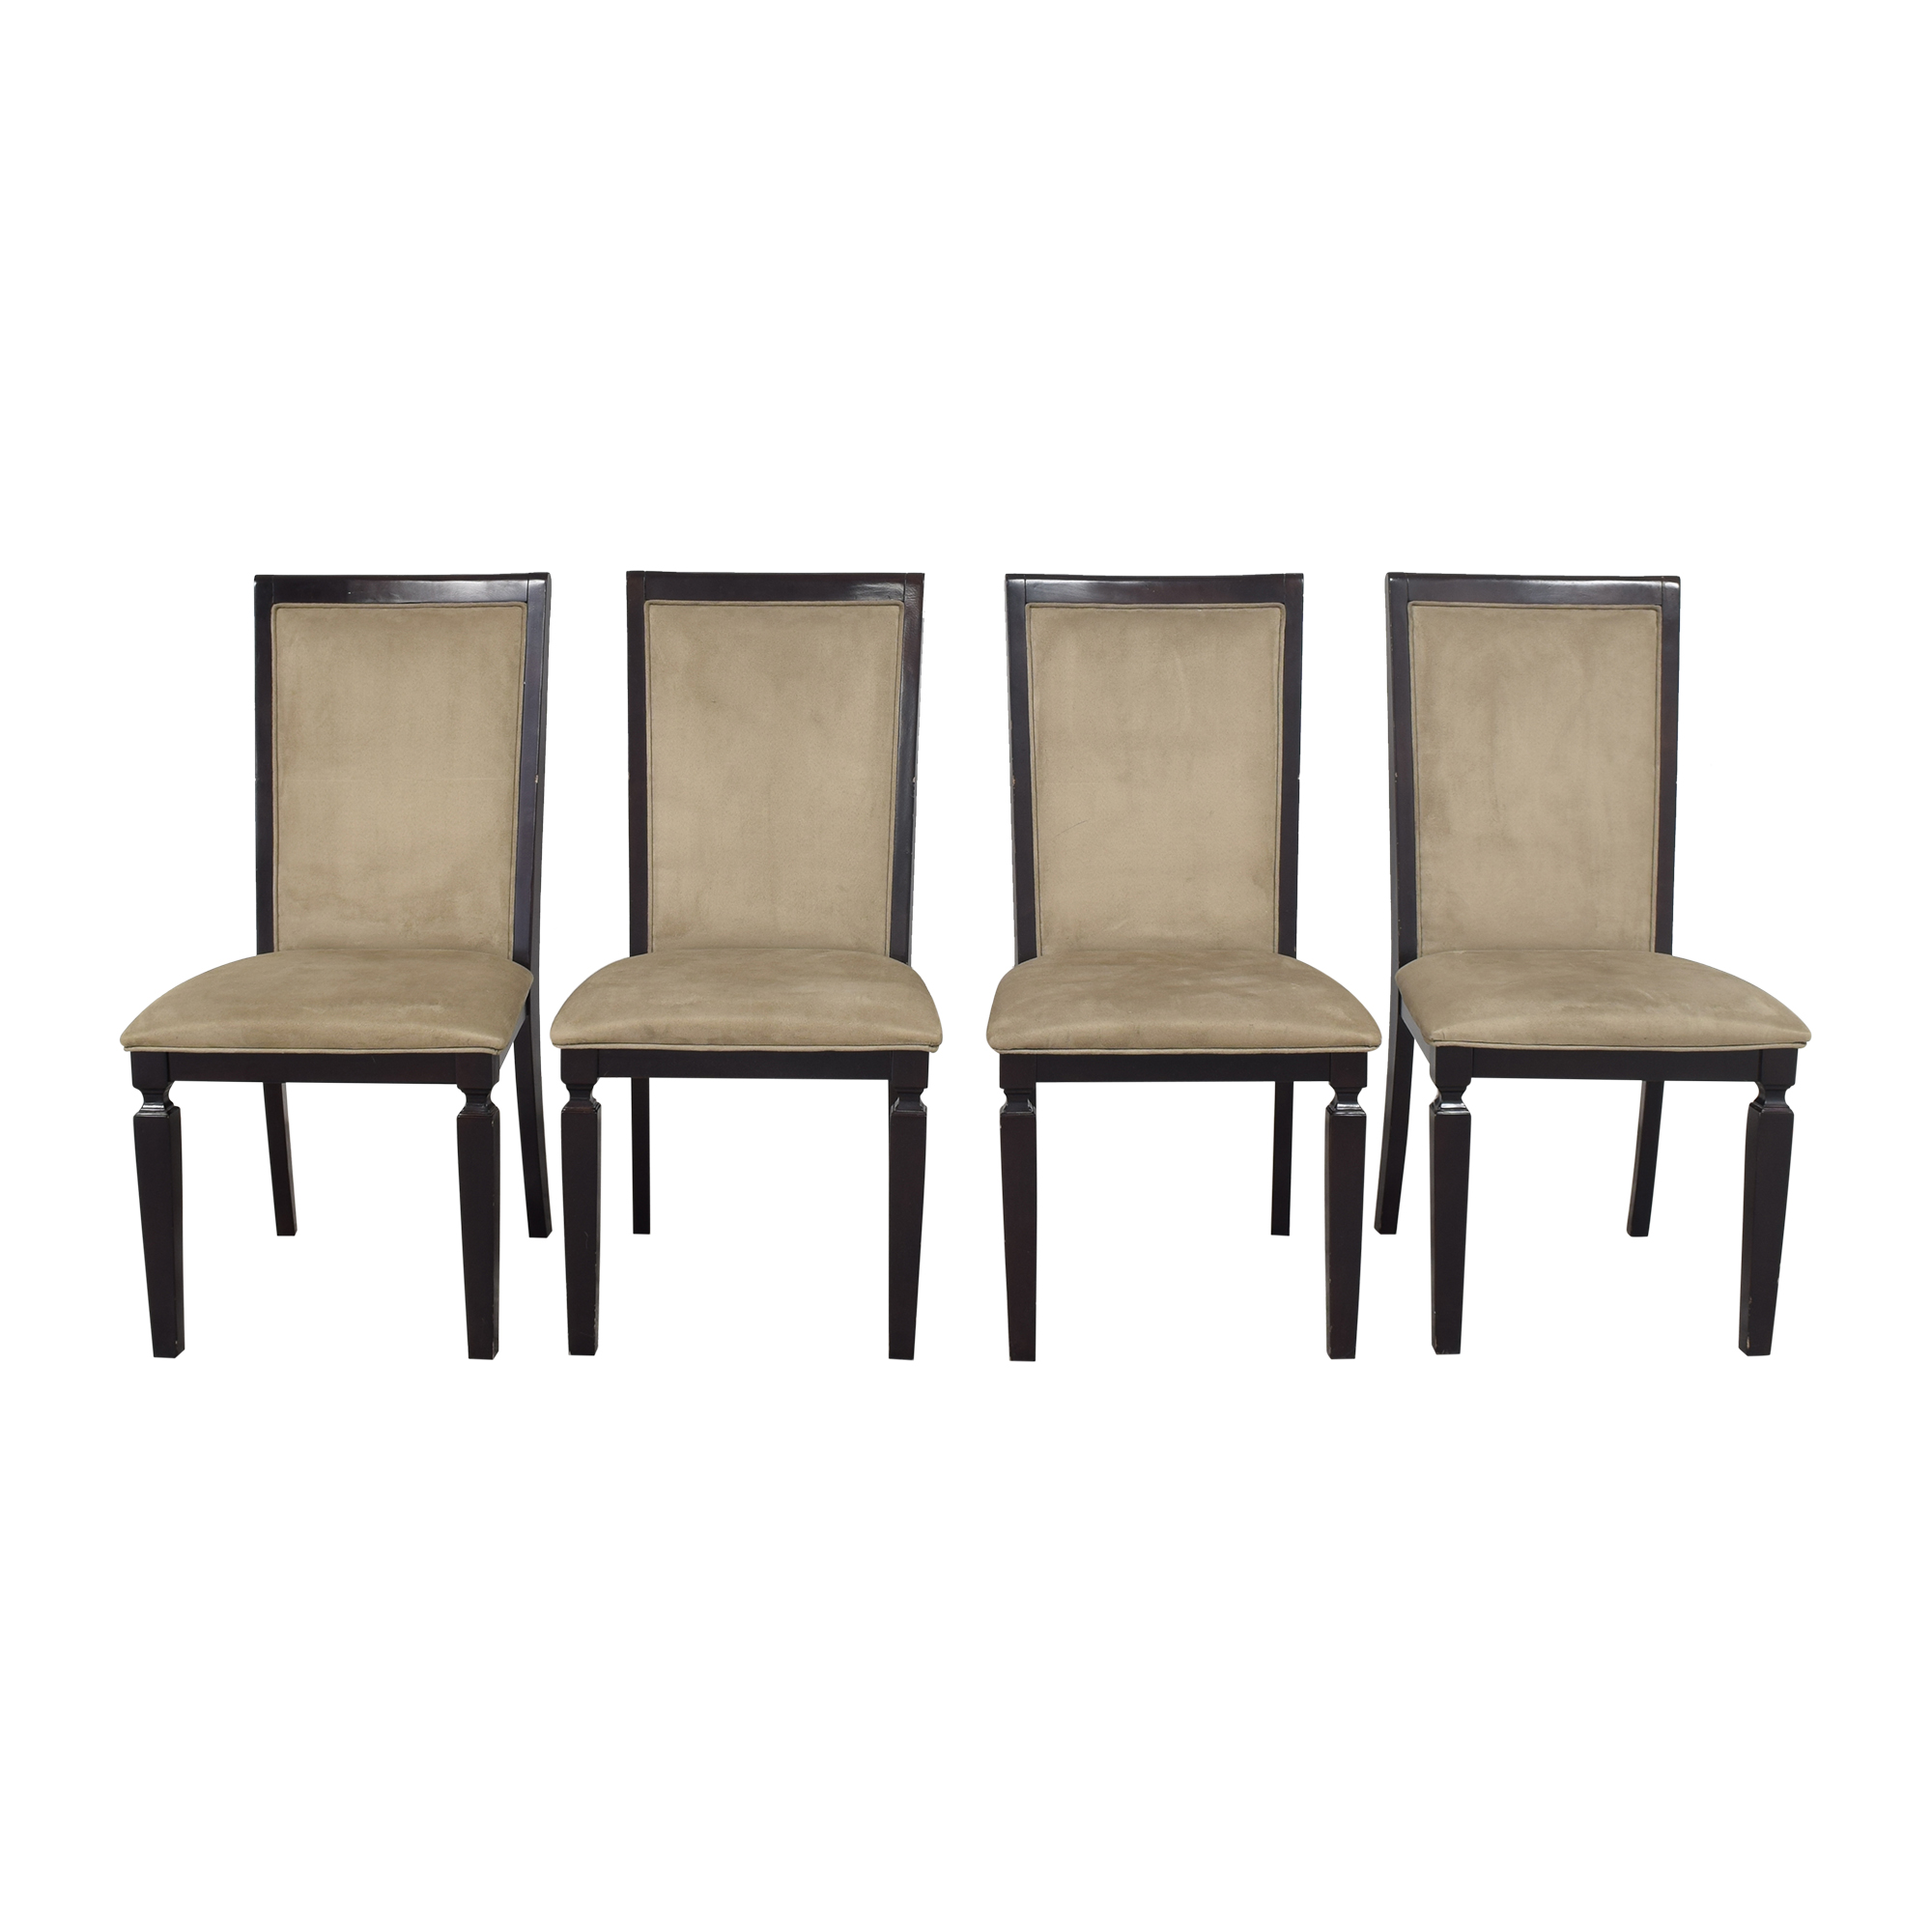 Homelegance Furniture Homelegance Furniture Dining Side Chairs nyc